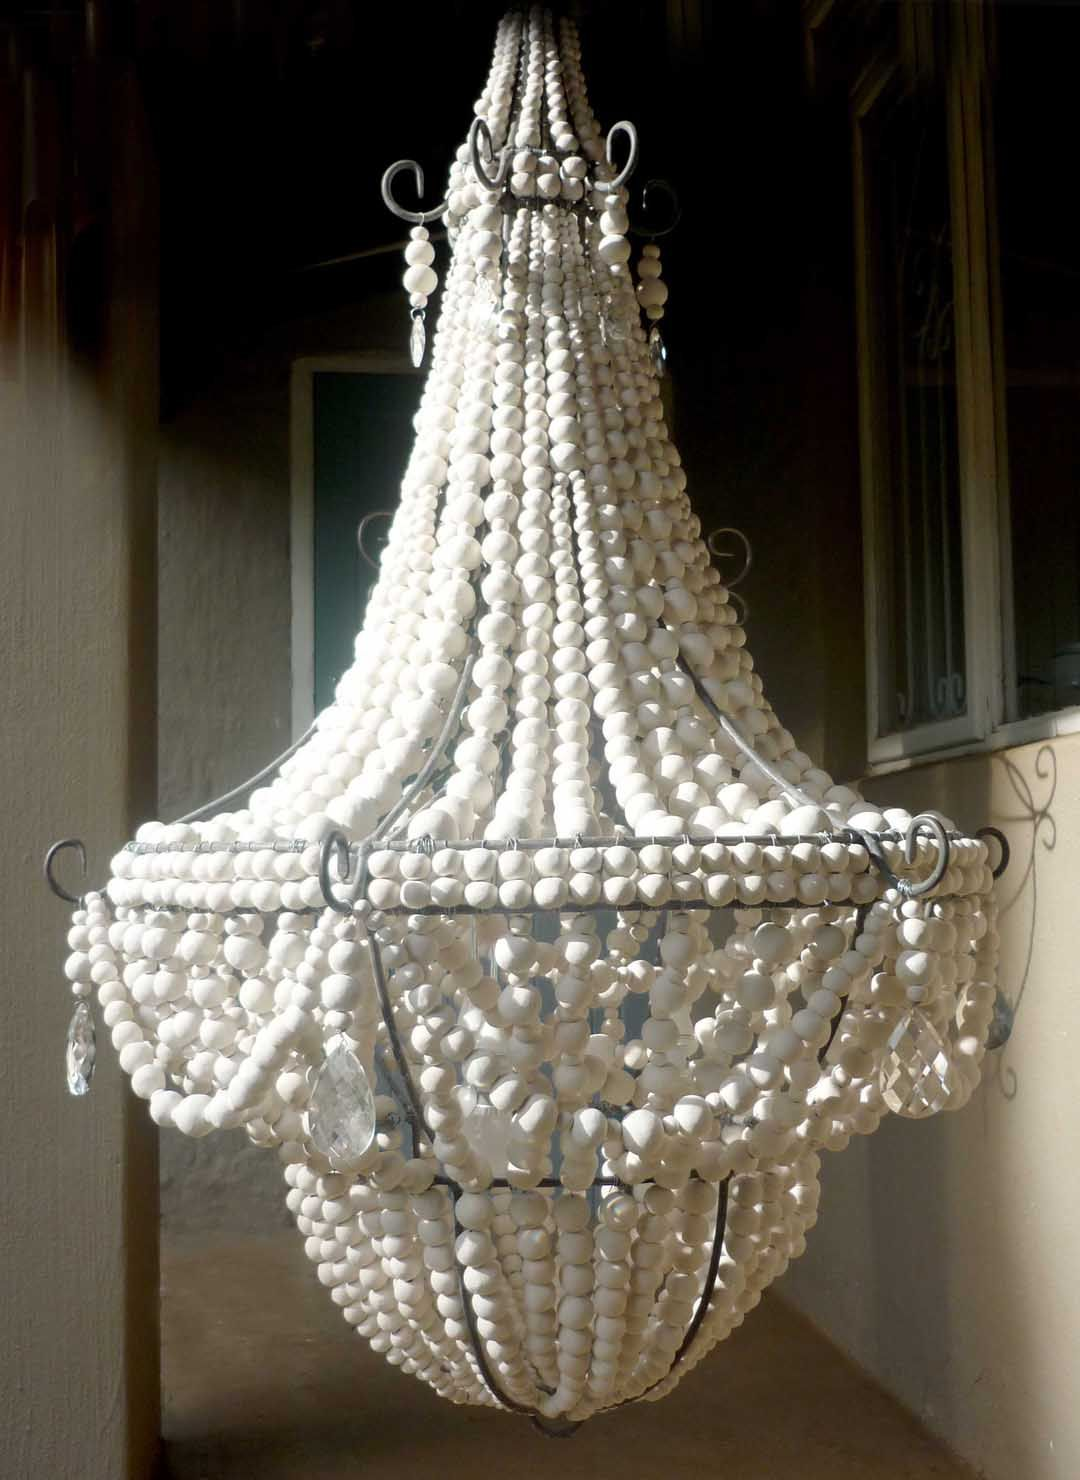 Ornate natural kitchen project ideas pinterest natural handmade chandeliers by hellooow handmade aloadofball Image collections